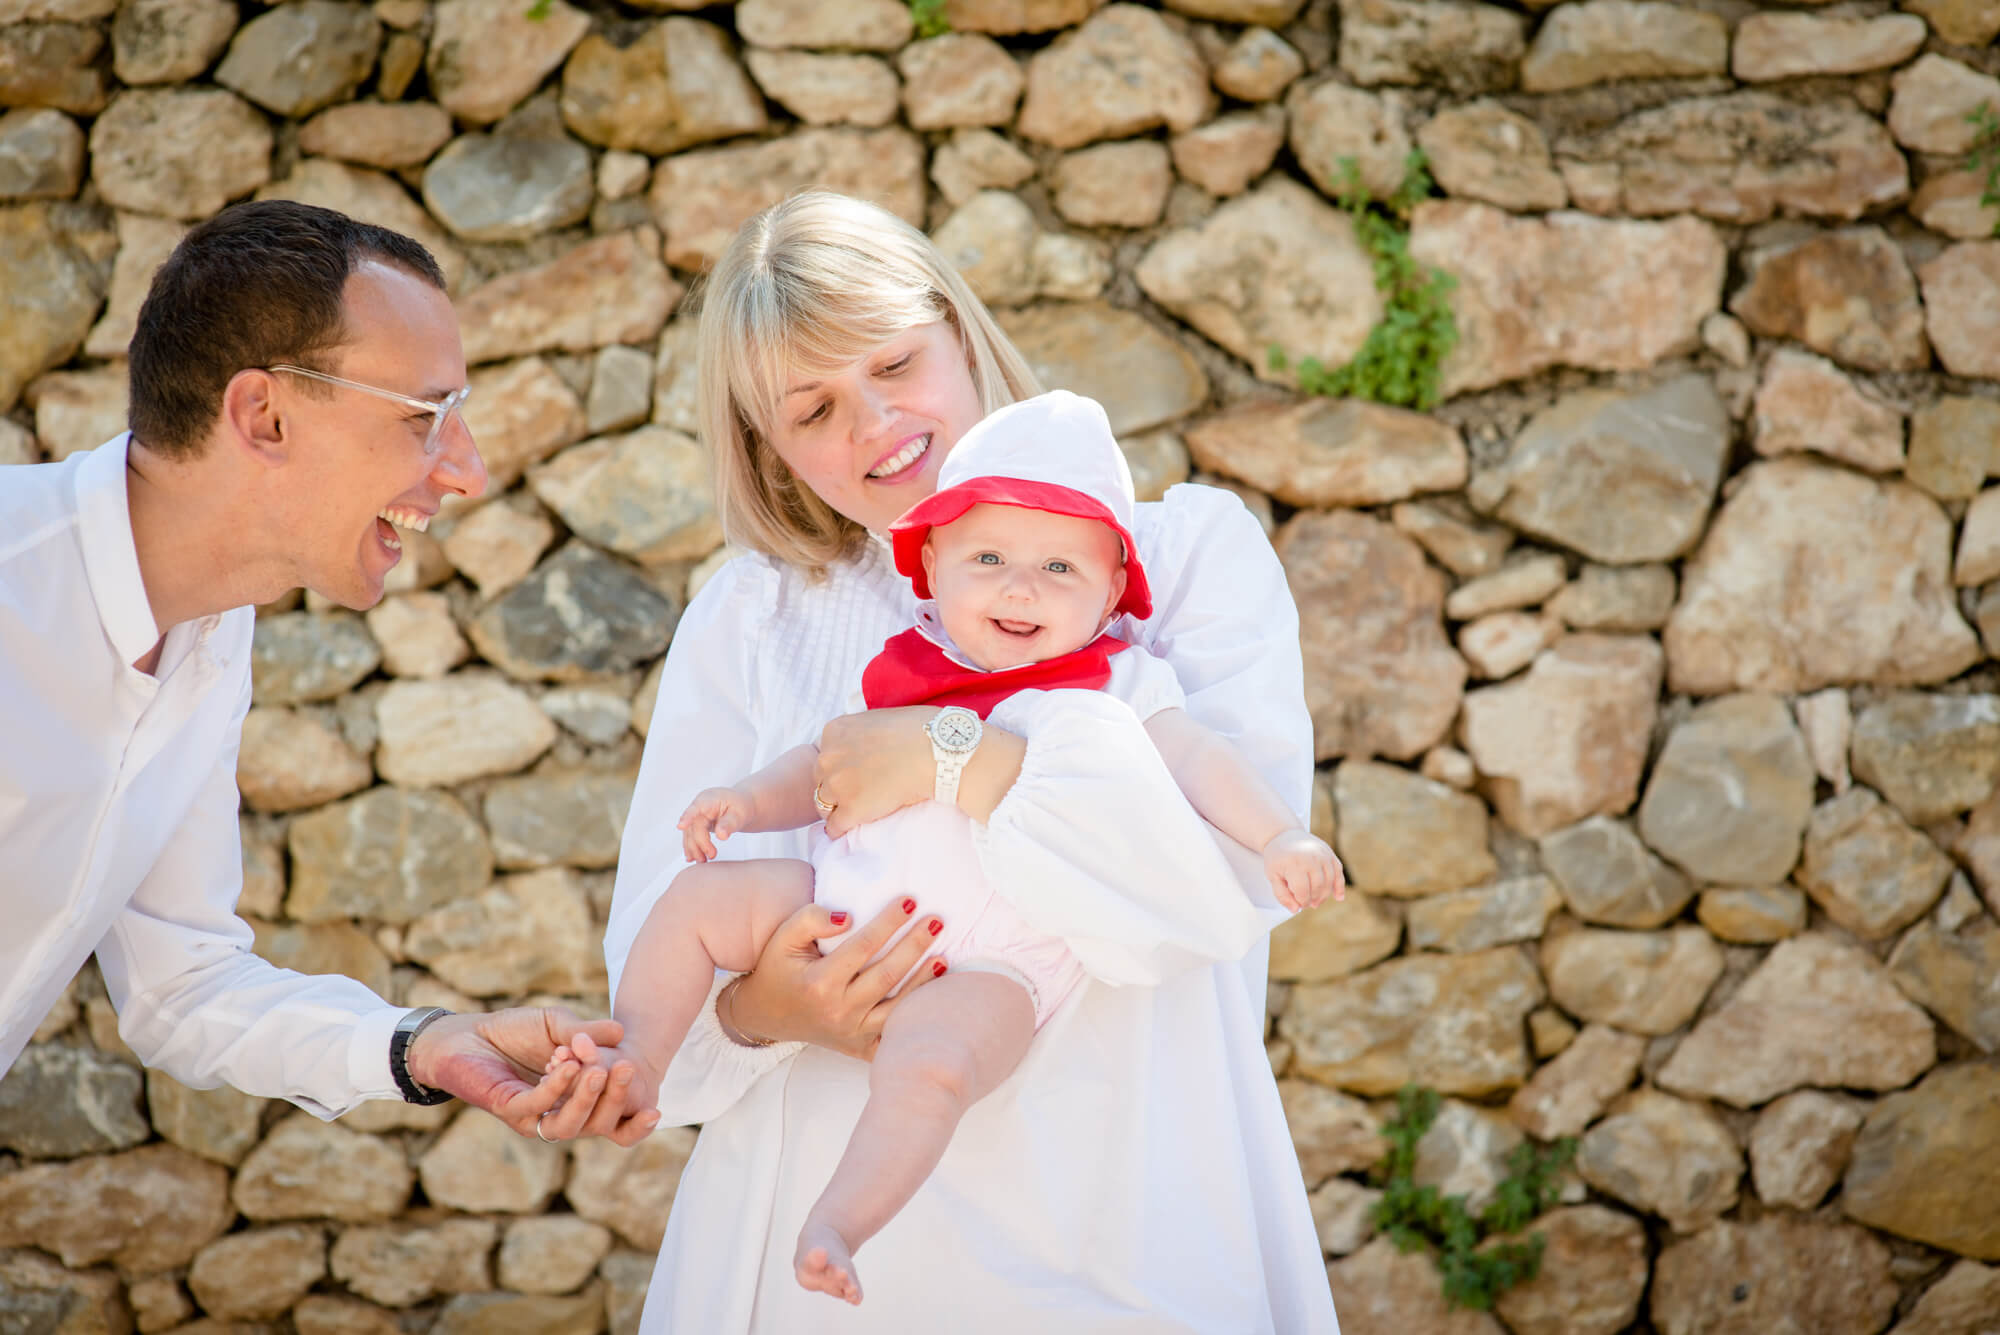 smiling baby portrait holiday mother father family